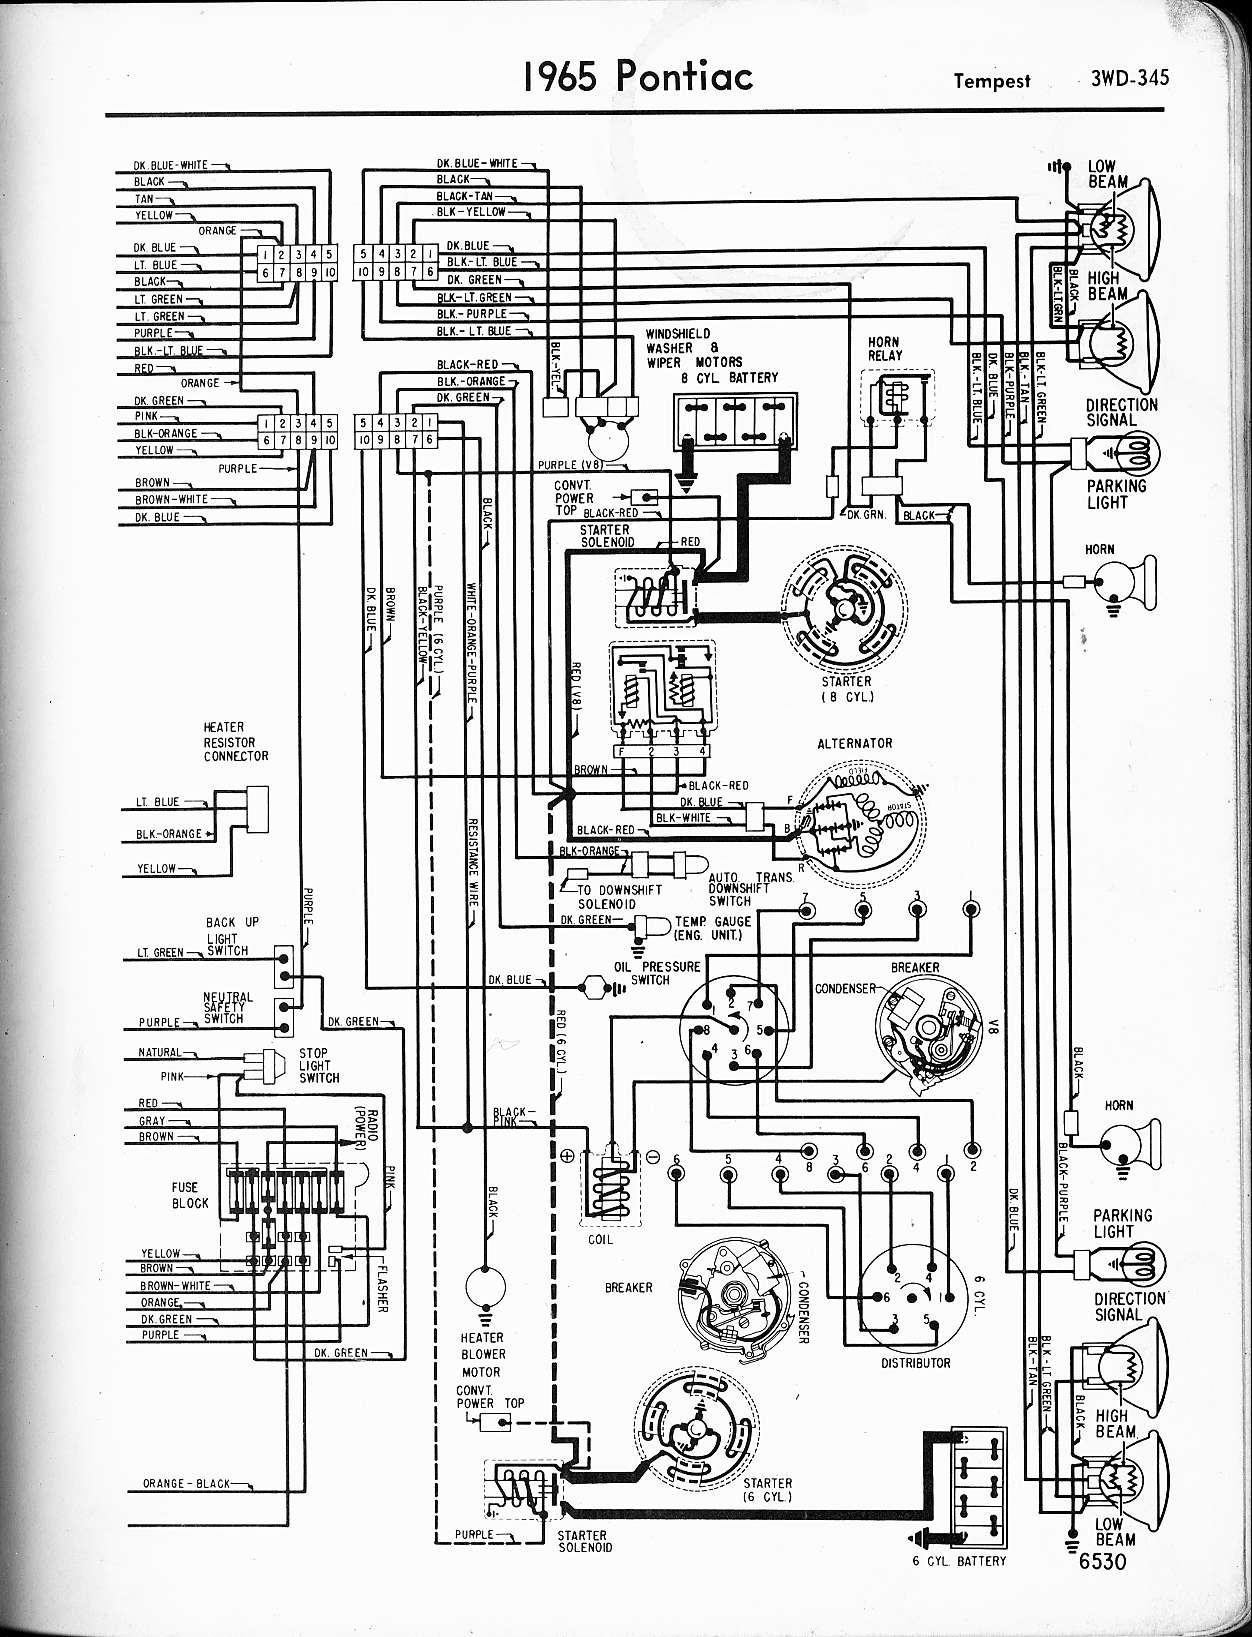 DIAGRAM] 1967 Pontiac Tachometer Wiring Diagram FULL Version HD Quality Wiring  Diagram - TYPEMR16WIRING.PLURIFIT.FRWiring And Fuse Database